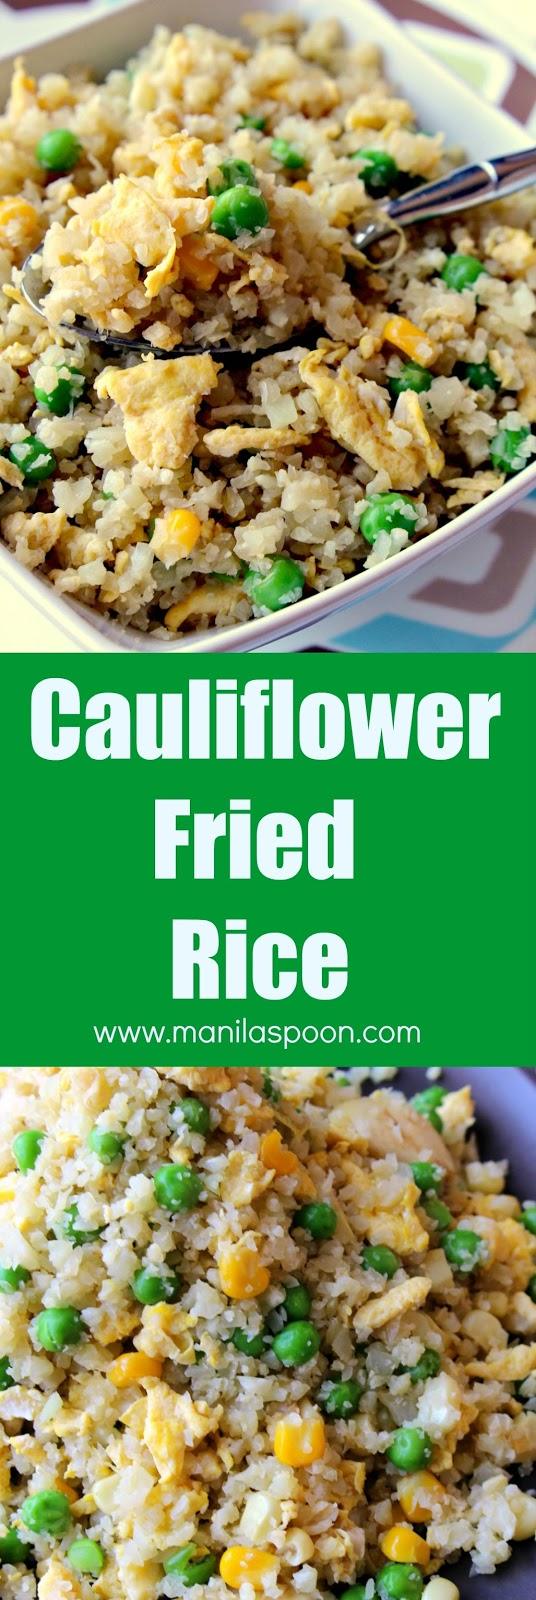 In 15 minutes or less you can make this delicious alternative to fried rice. A versatile recipe, you can add your favorite meat (esp. left-over ones), veggies and adjust the taste to your liking! | manilaspoon.com